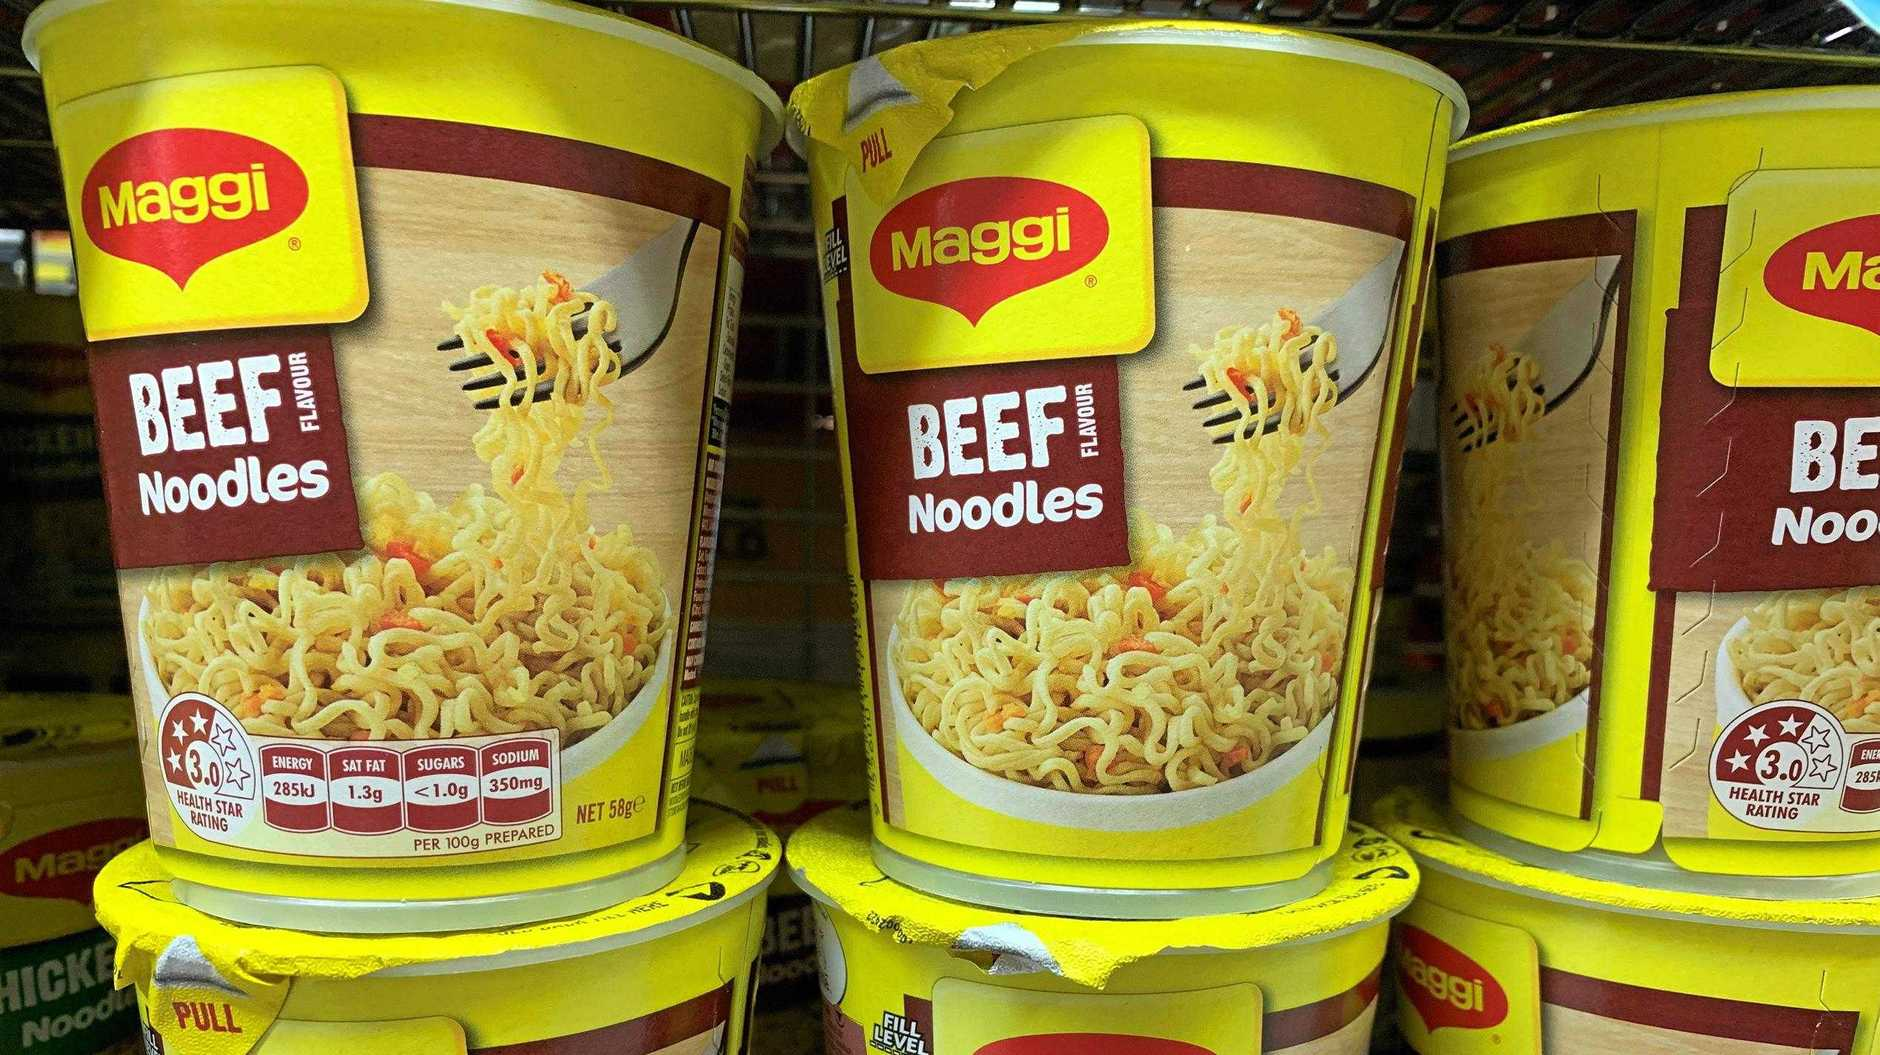 Noodles are a good easy meal for someone who doesn't have access to a kitchen.